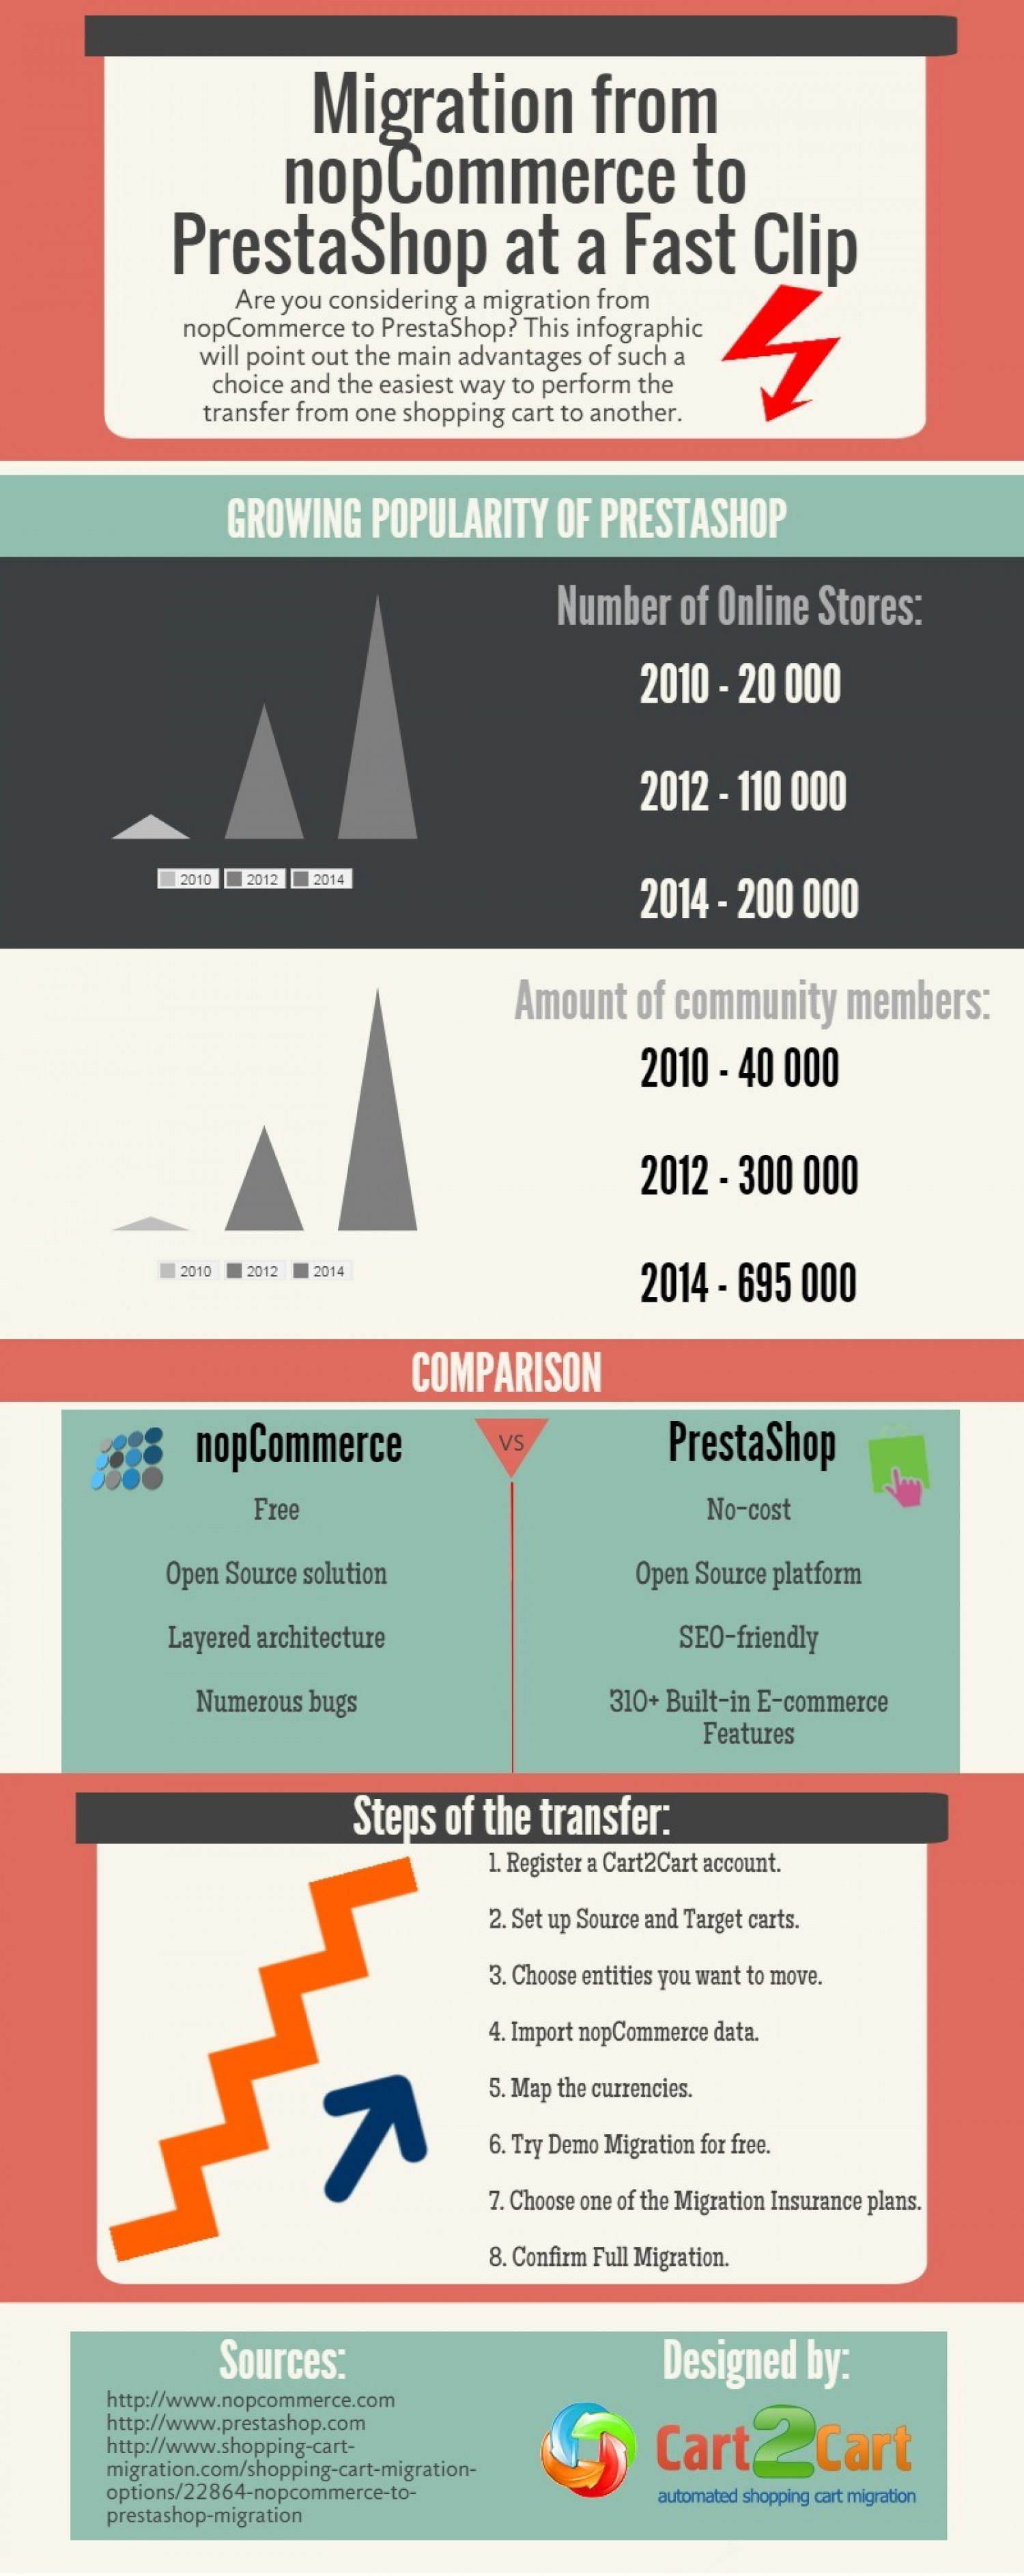 Migration from nopCommerce to PrestaShop at a Fast Clip Infographic